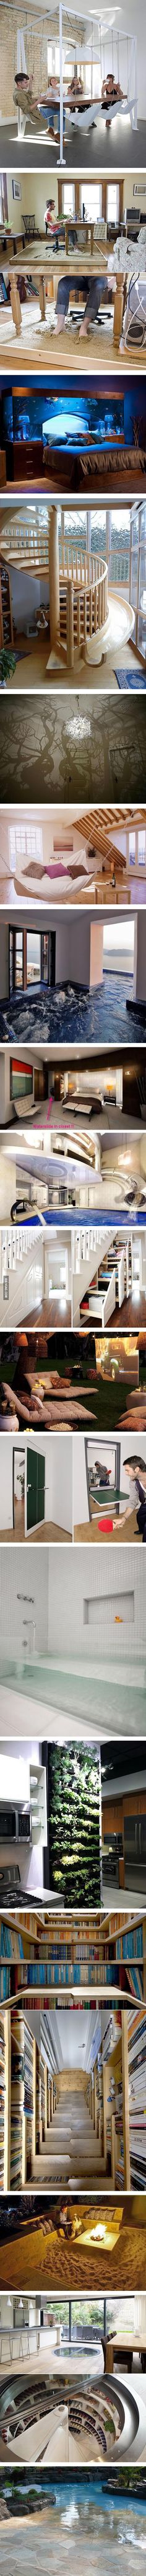 18 awesome house ideas.